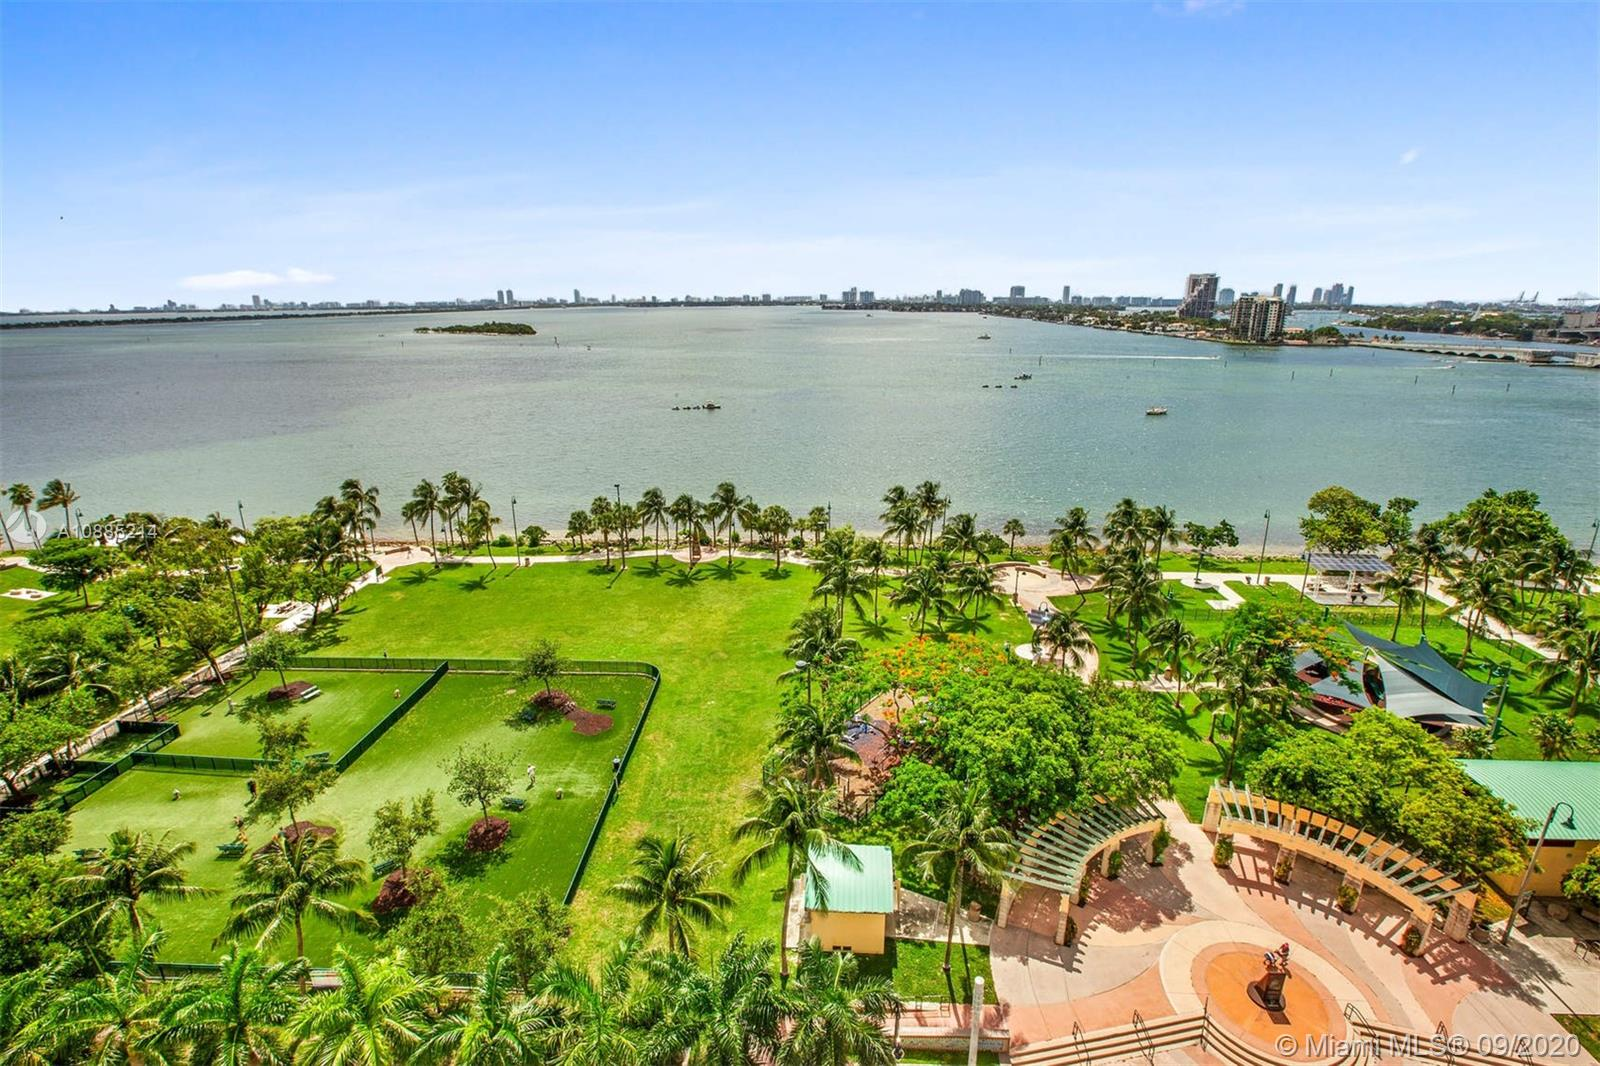 Enjoy the open, beautiful views of the Biscayne bay & park from this spacious & renovated 3 BD /3 BA corner unit. Professionally designed by Brazilian architect Fernanda Negrelli. The open kitchen, LR & den are integrated spaces. Inspired by French & Chinese architecture you will see handcrafted wood window panels on the walls, amongst many more design details. Abundant amount of natural lighting flows through the apartment as the living room has breathtaking views of Biscayne Bay. Triple balconies accessed from each bedroom. Amenities include private + valet parking, concierge, pool as well as fitness facilities. This unique apartment us in mint condition and ready to be moved into right away.